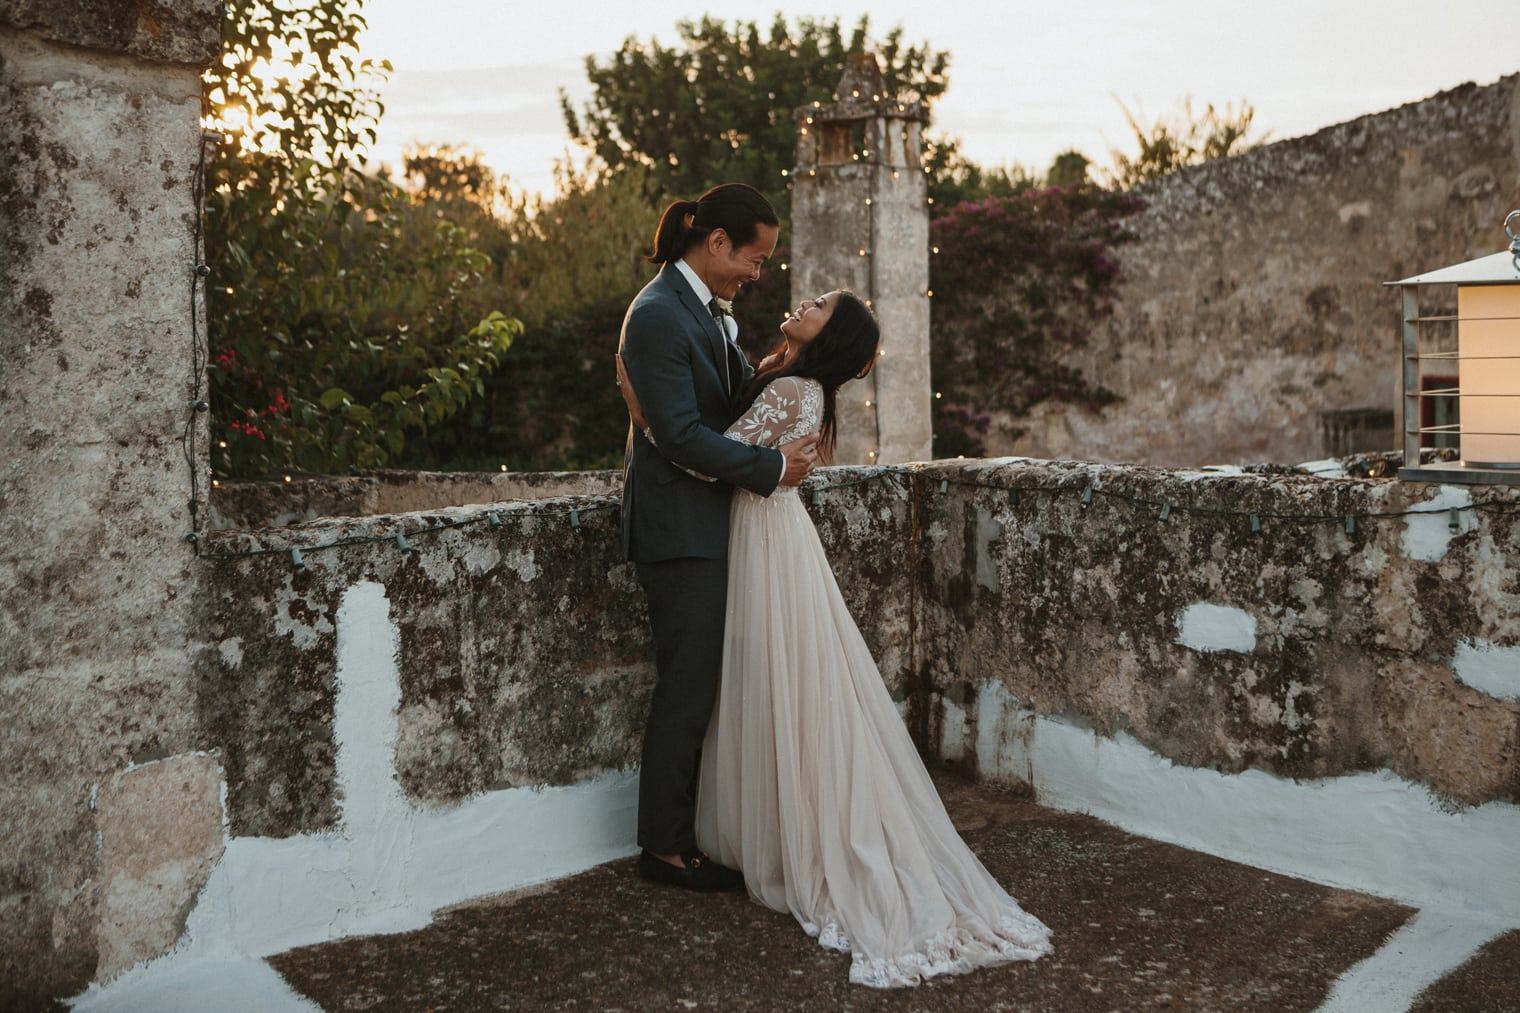 Italy wedding photographer captures funny moment between bride and groom at masseria torre coccaro